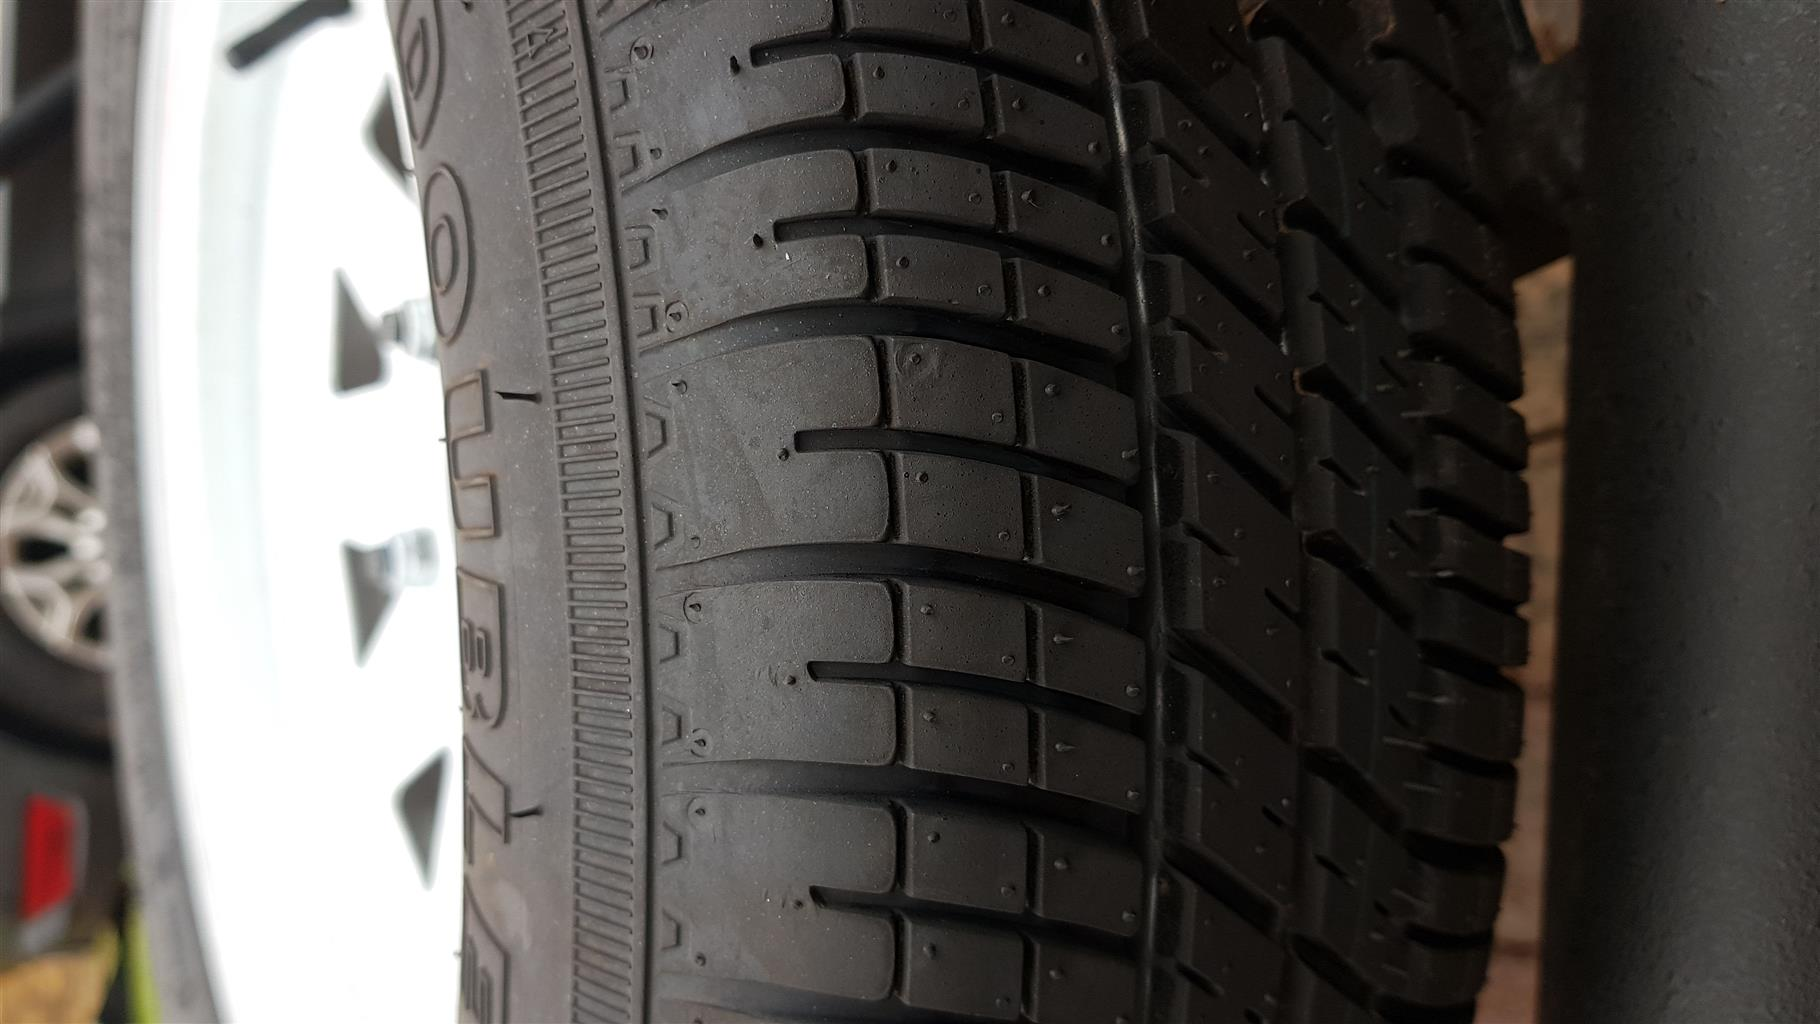 Hubs and Wheels Tyres